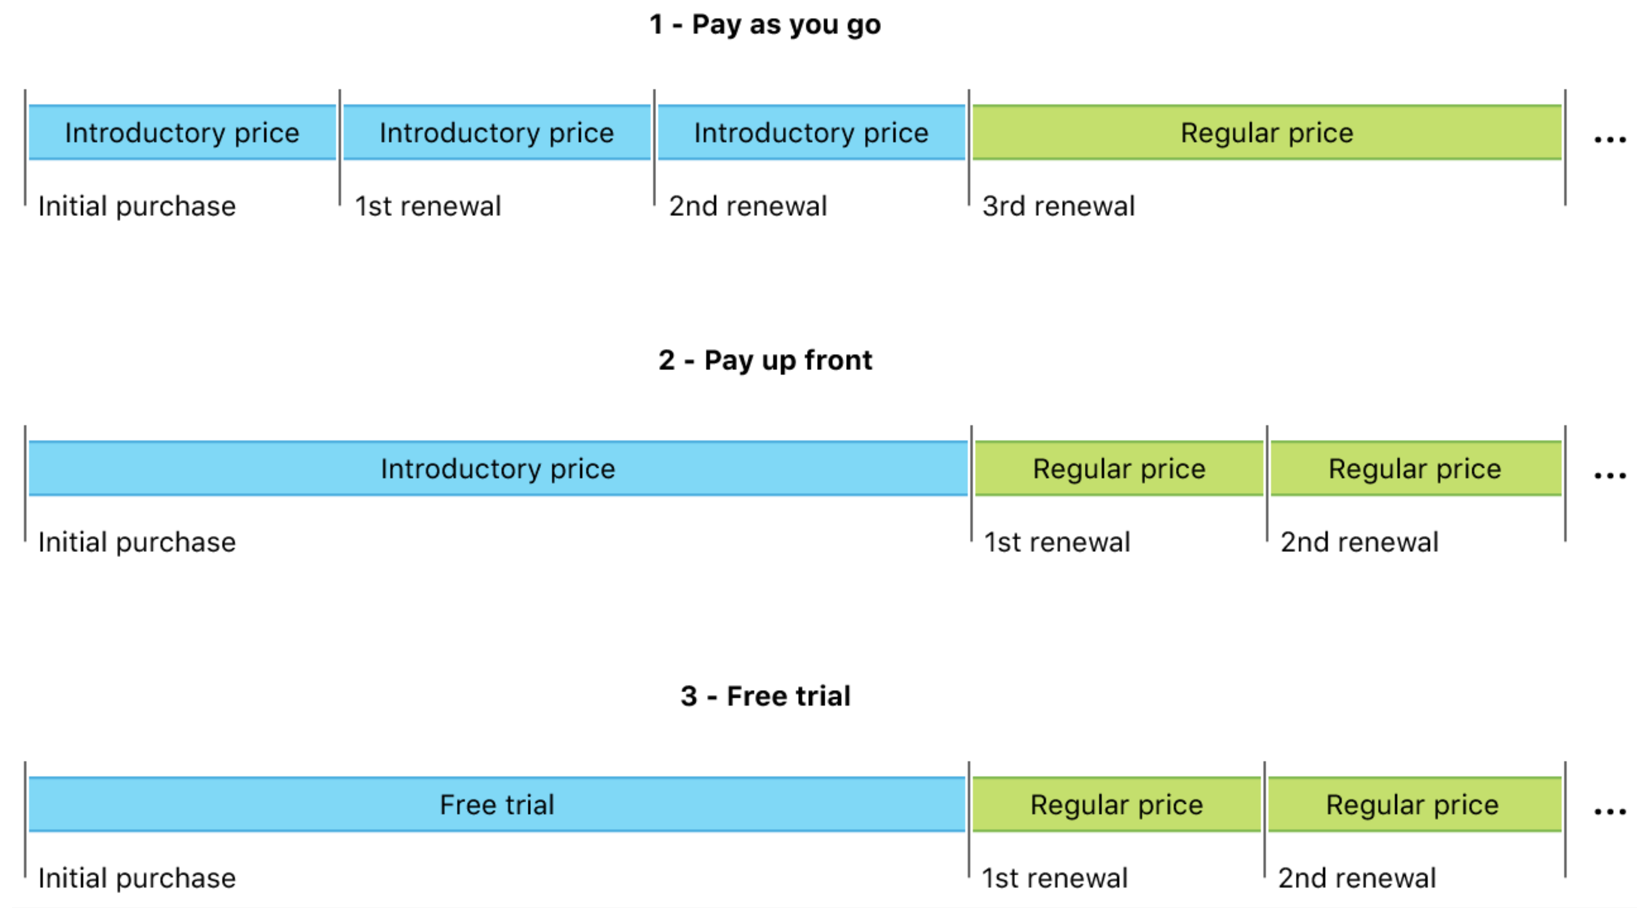 Diagram shows subscription timelines for the three introductory price types:  pay as you go, pay up front, and free trial.